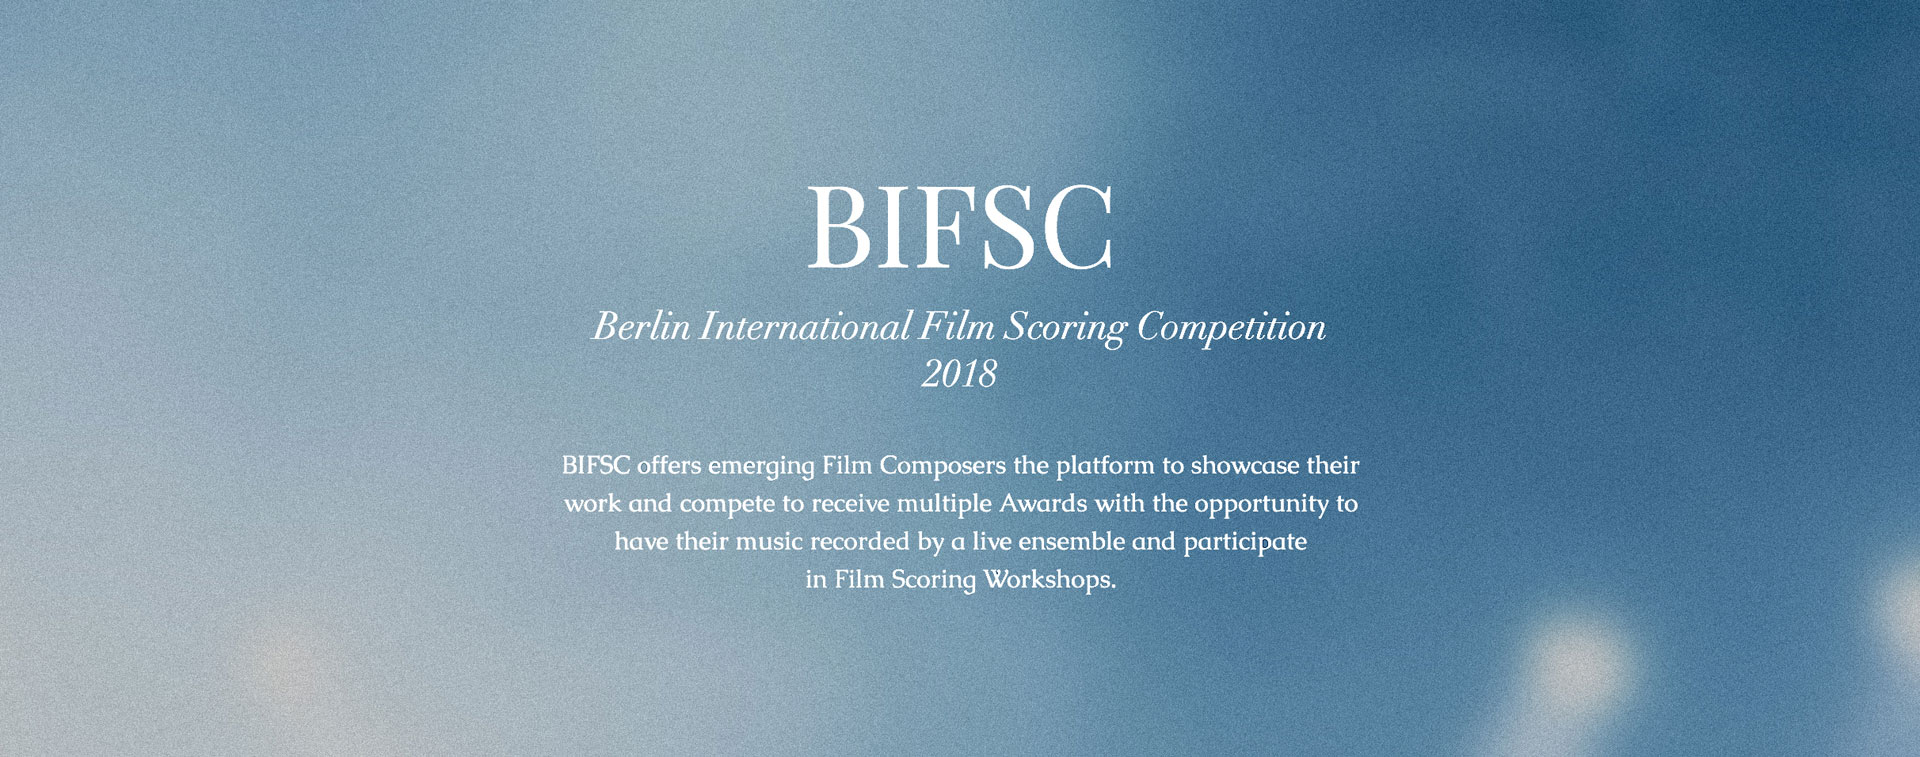 Berlin International Film Scoring Competition